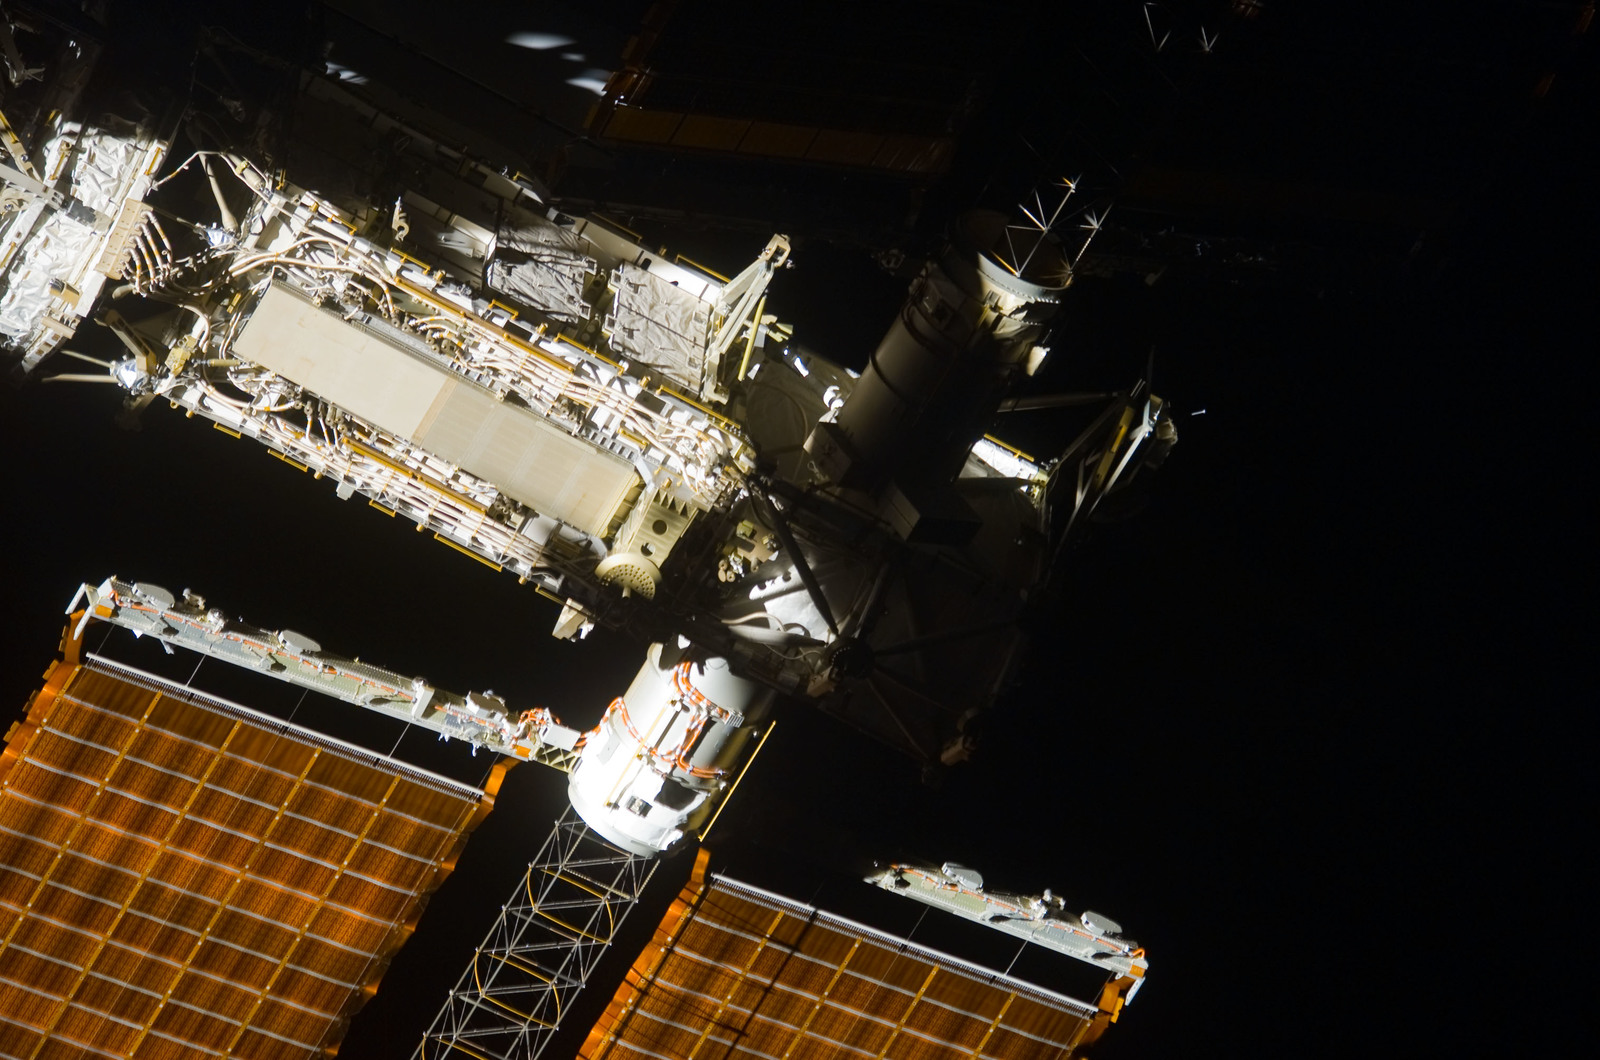 S123E009295 - STS-123 - Flyaround view of the ISS taken from STS-123 Space Shuttle Endeavor